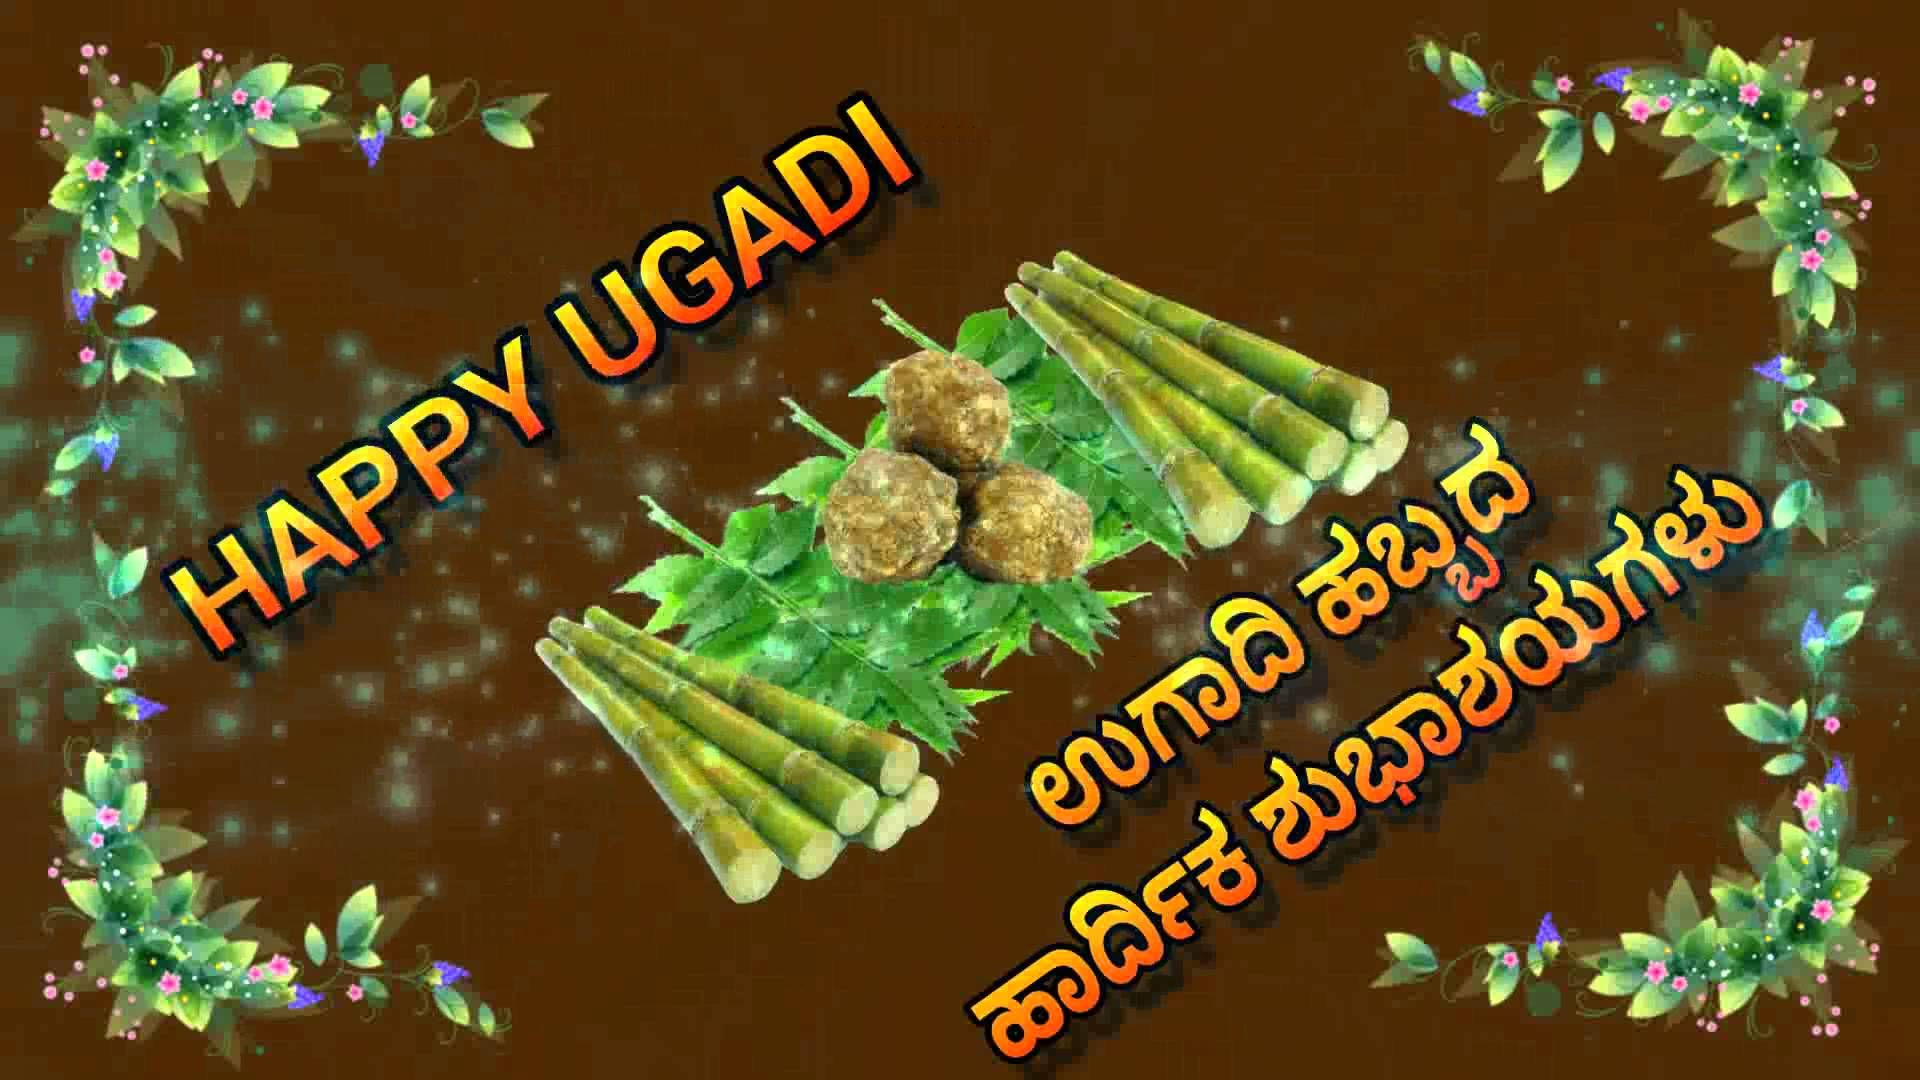 Happy Ugadi 2016 Wishes In Kannada Ugadi Kannada Greetings Kannada